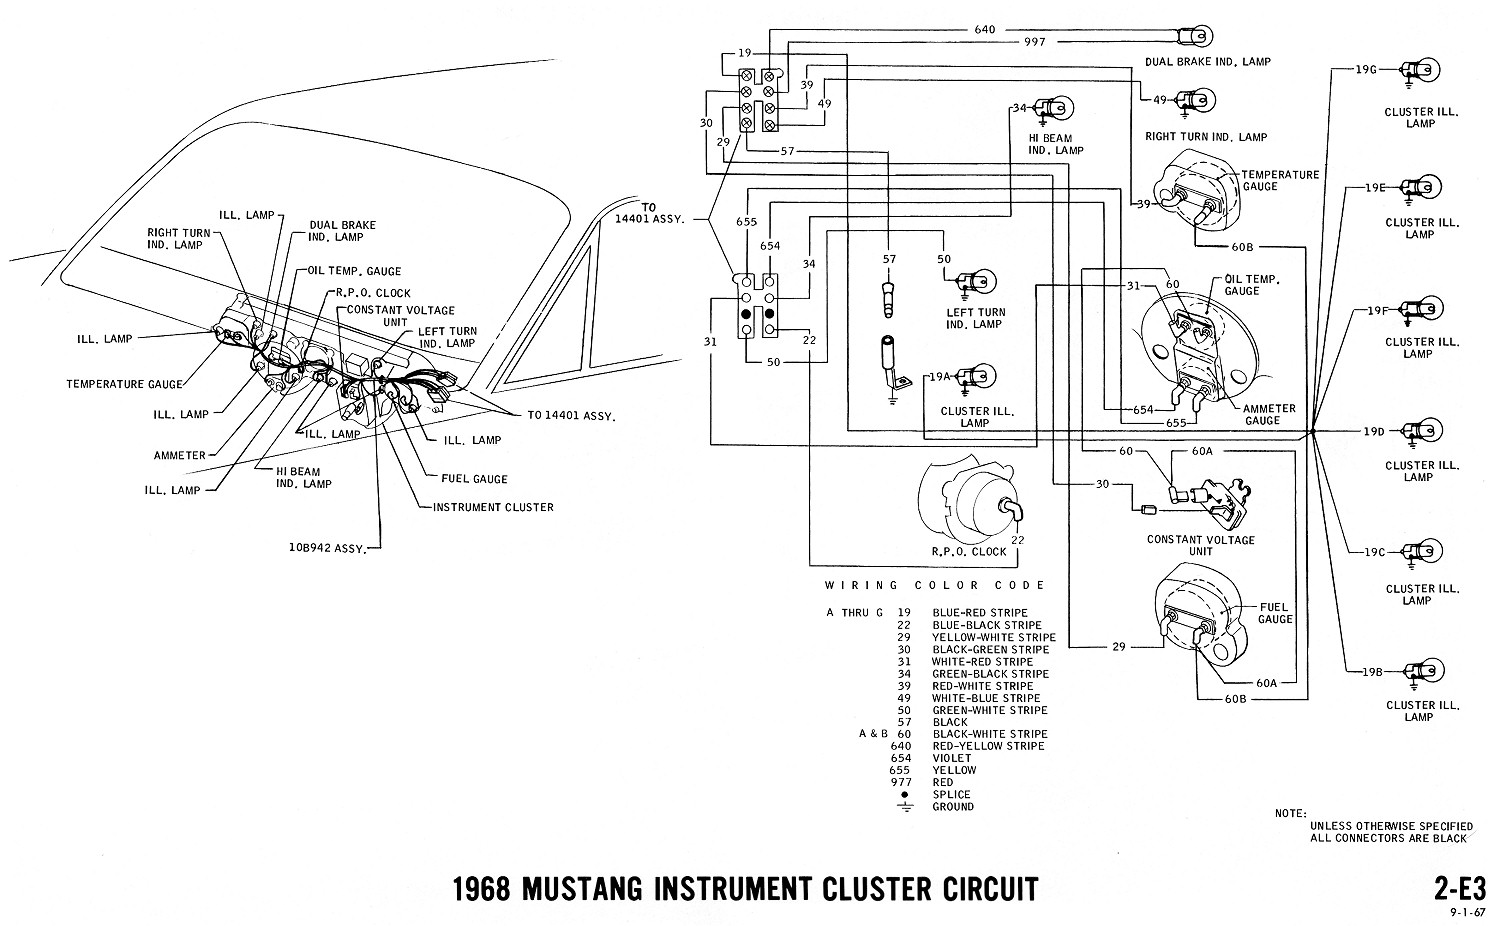 1968 Chrysler Convertible Wiring Diagram Schematic Schematics 1966 Mustang Detailed Rh Drphilipharris Com Starter Terminal Dodge